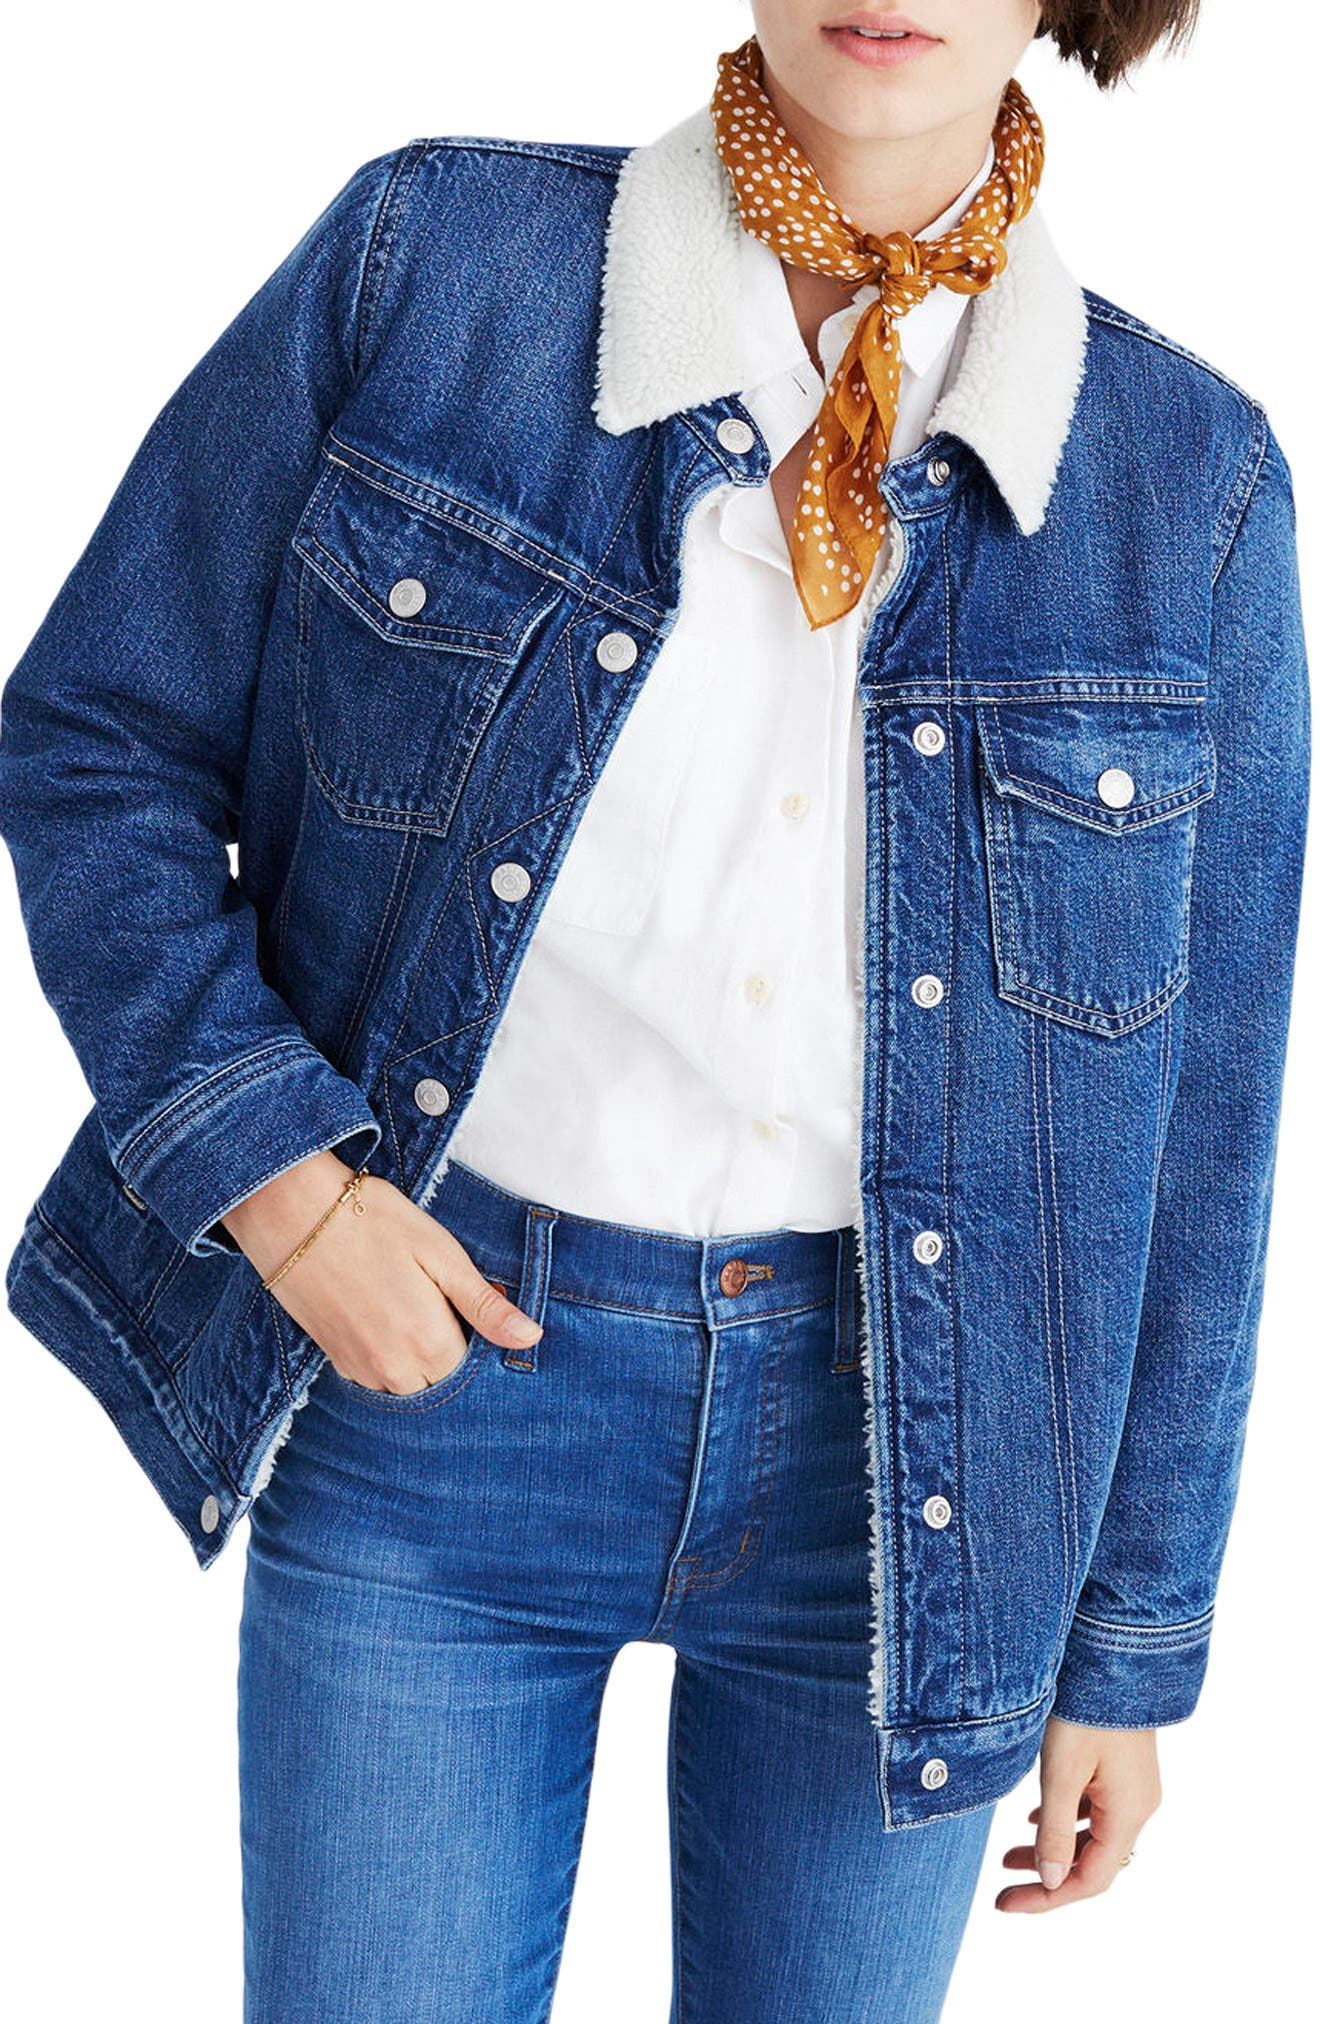 Alternate Image 1 Selected - Madewell Oversize Jean Jacket